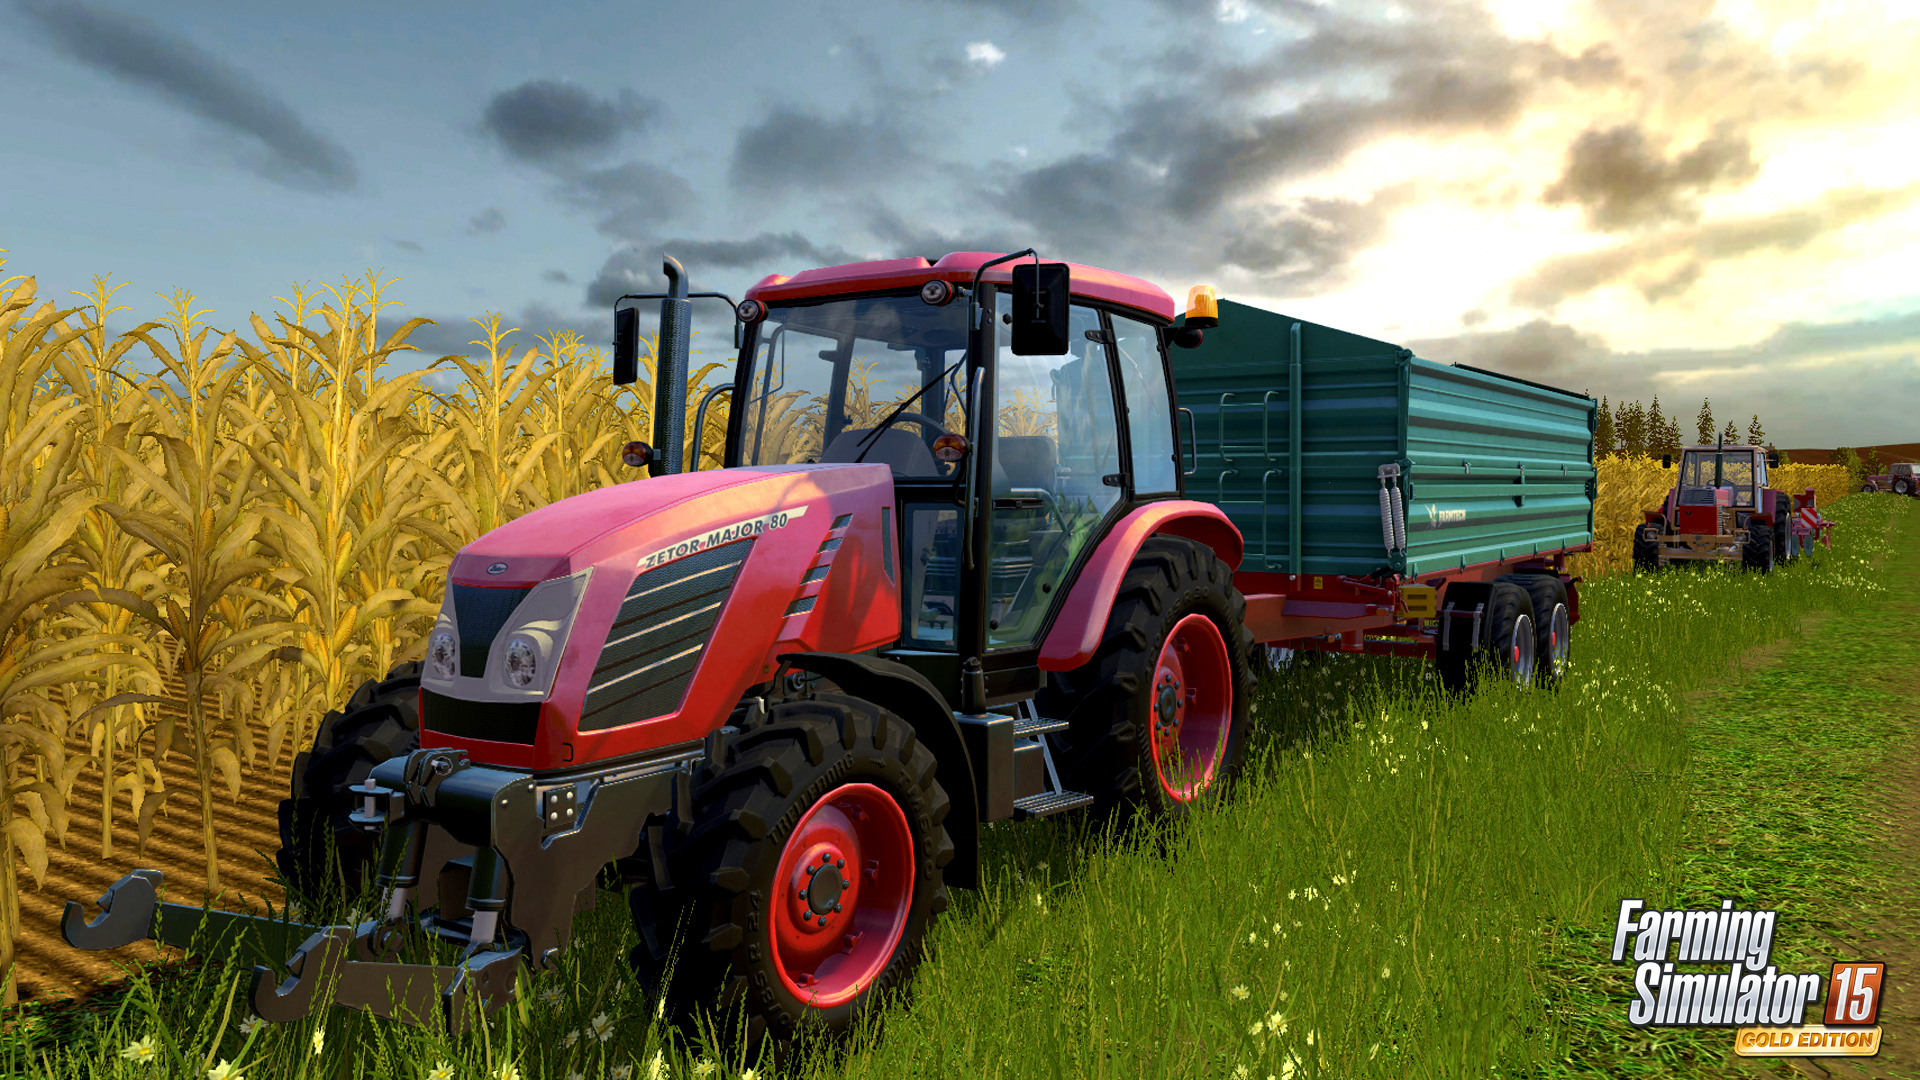 Farming Simulator 15 GOLD Edition brings new setting and